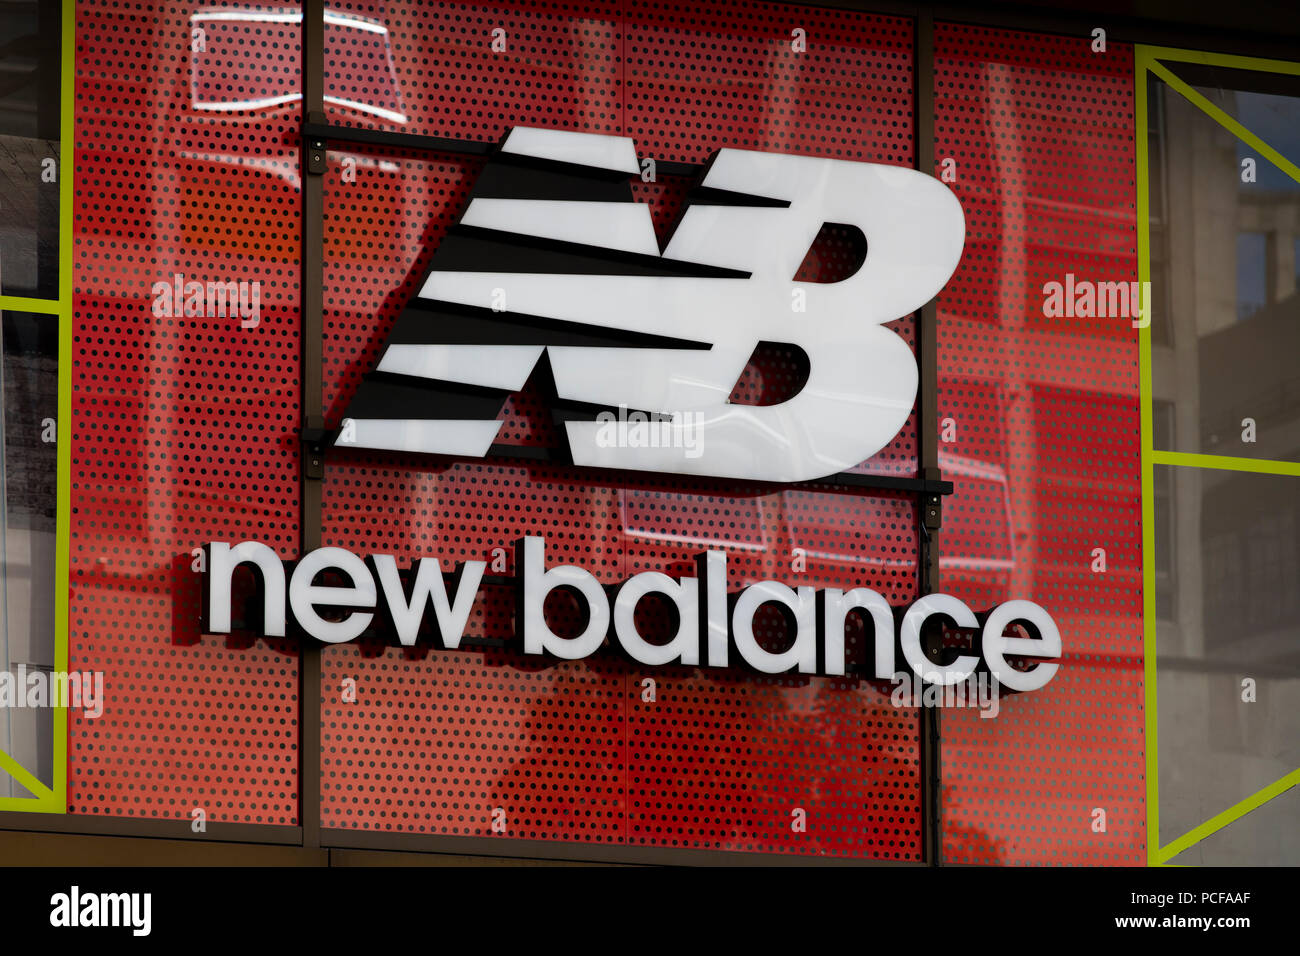 d2f55c2da8 LONDON, UK - JULY 31th 2018: New Balance trainers and sportswear shop sign  on Oxford Street in central London.